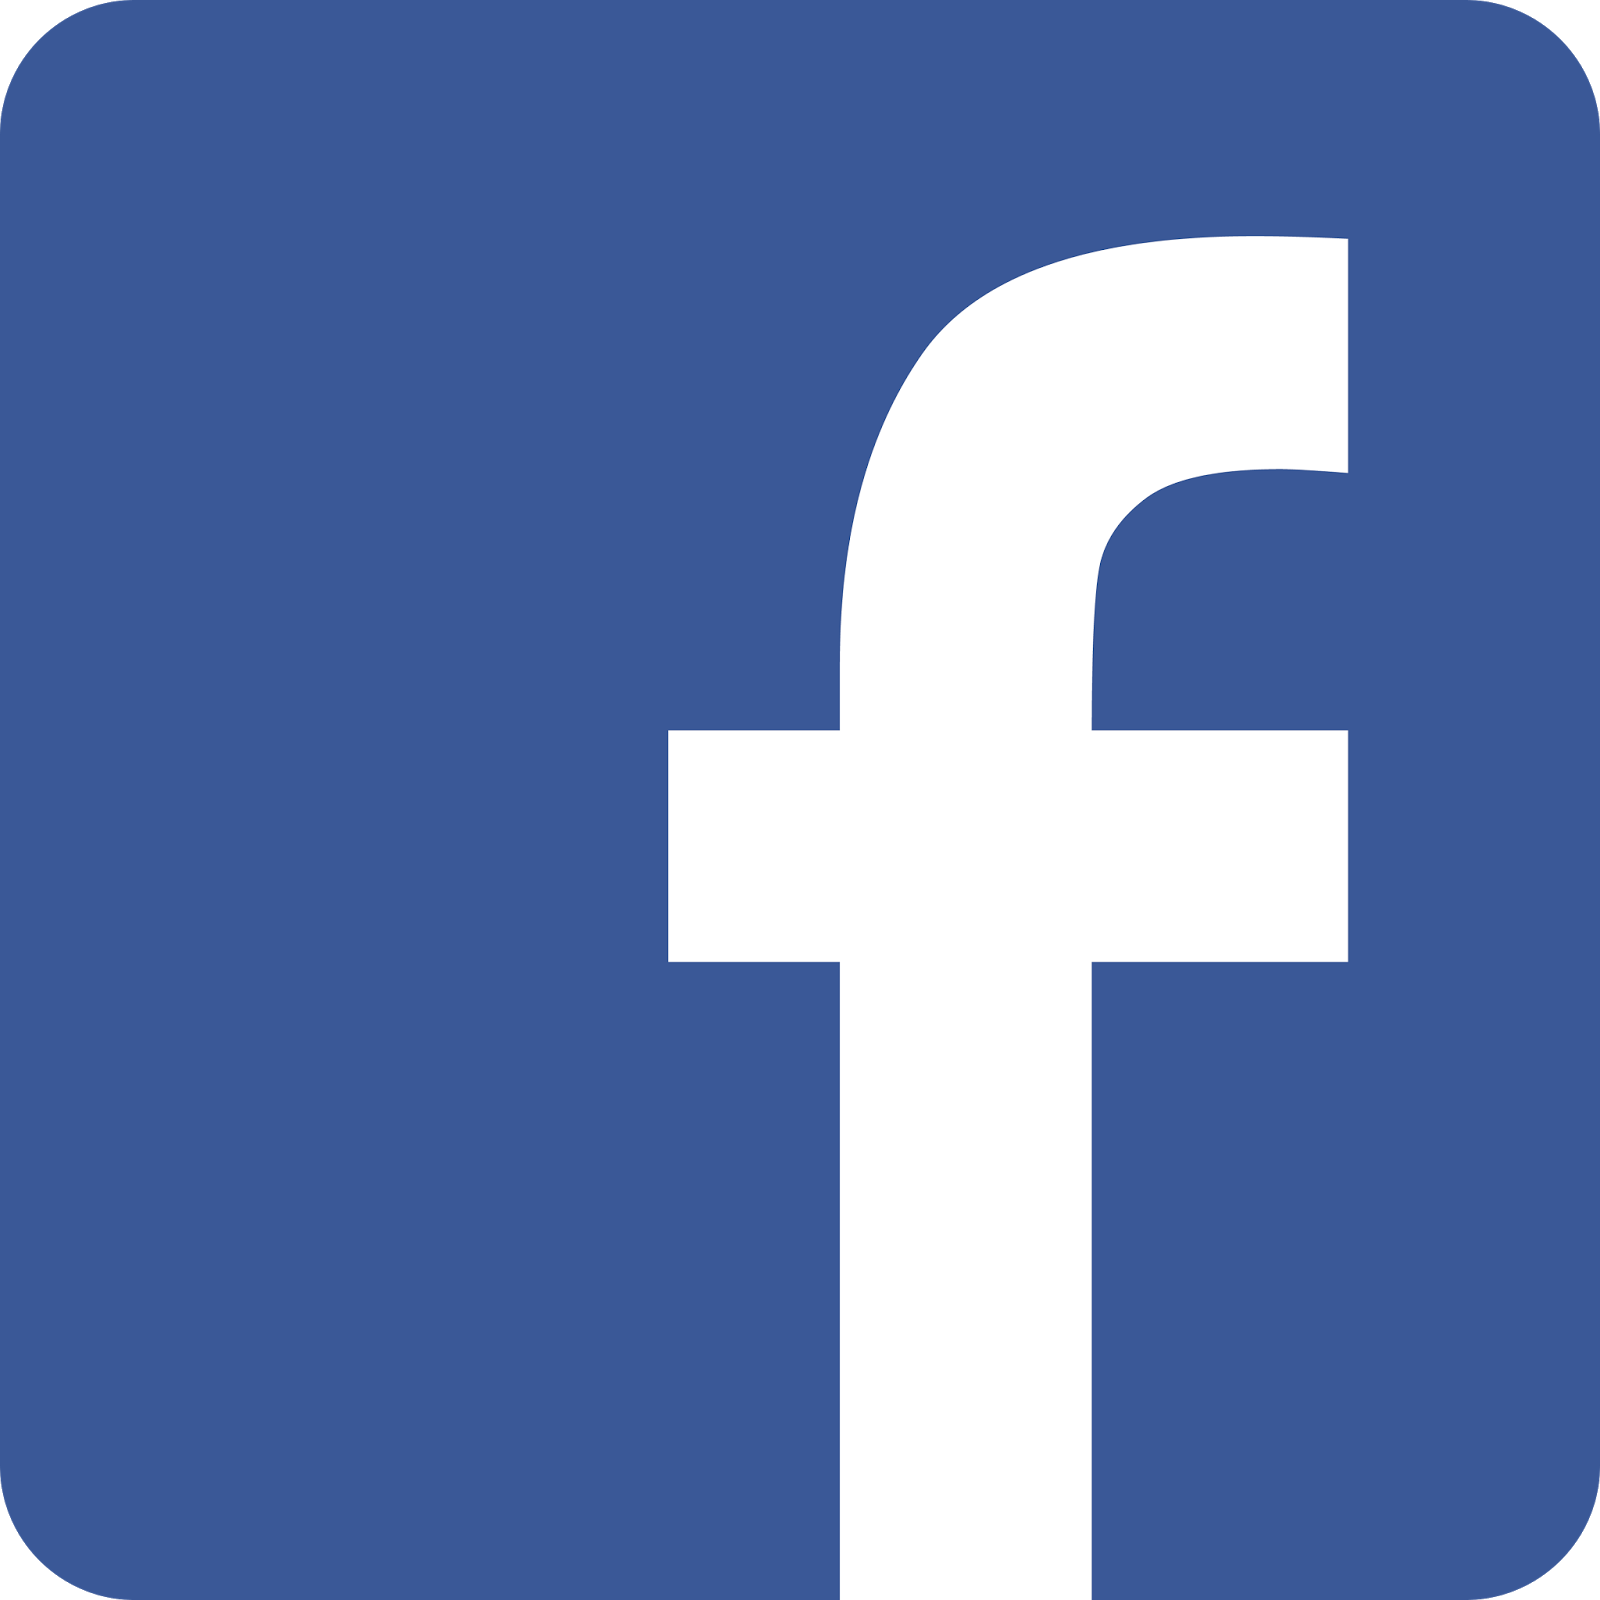 facebook transparent logo png 0